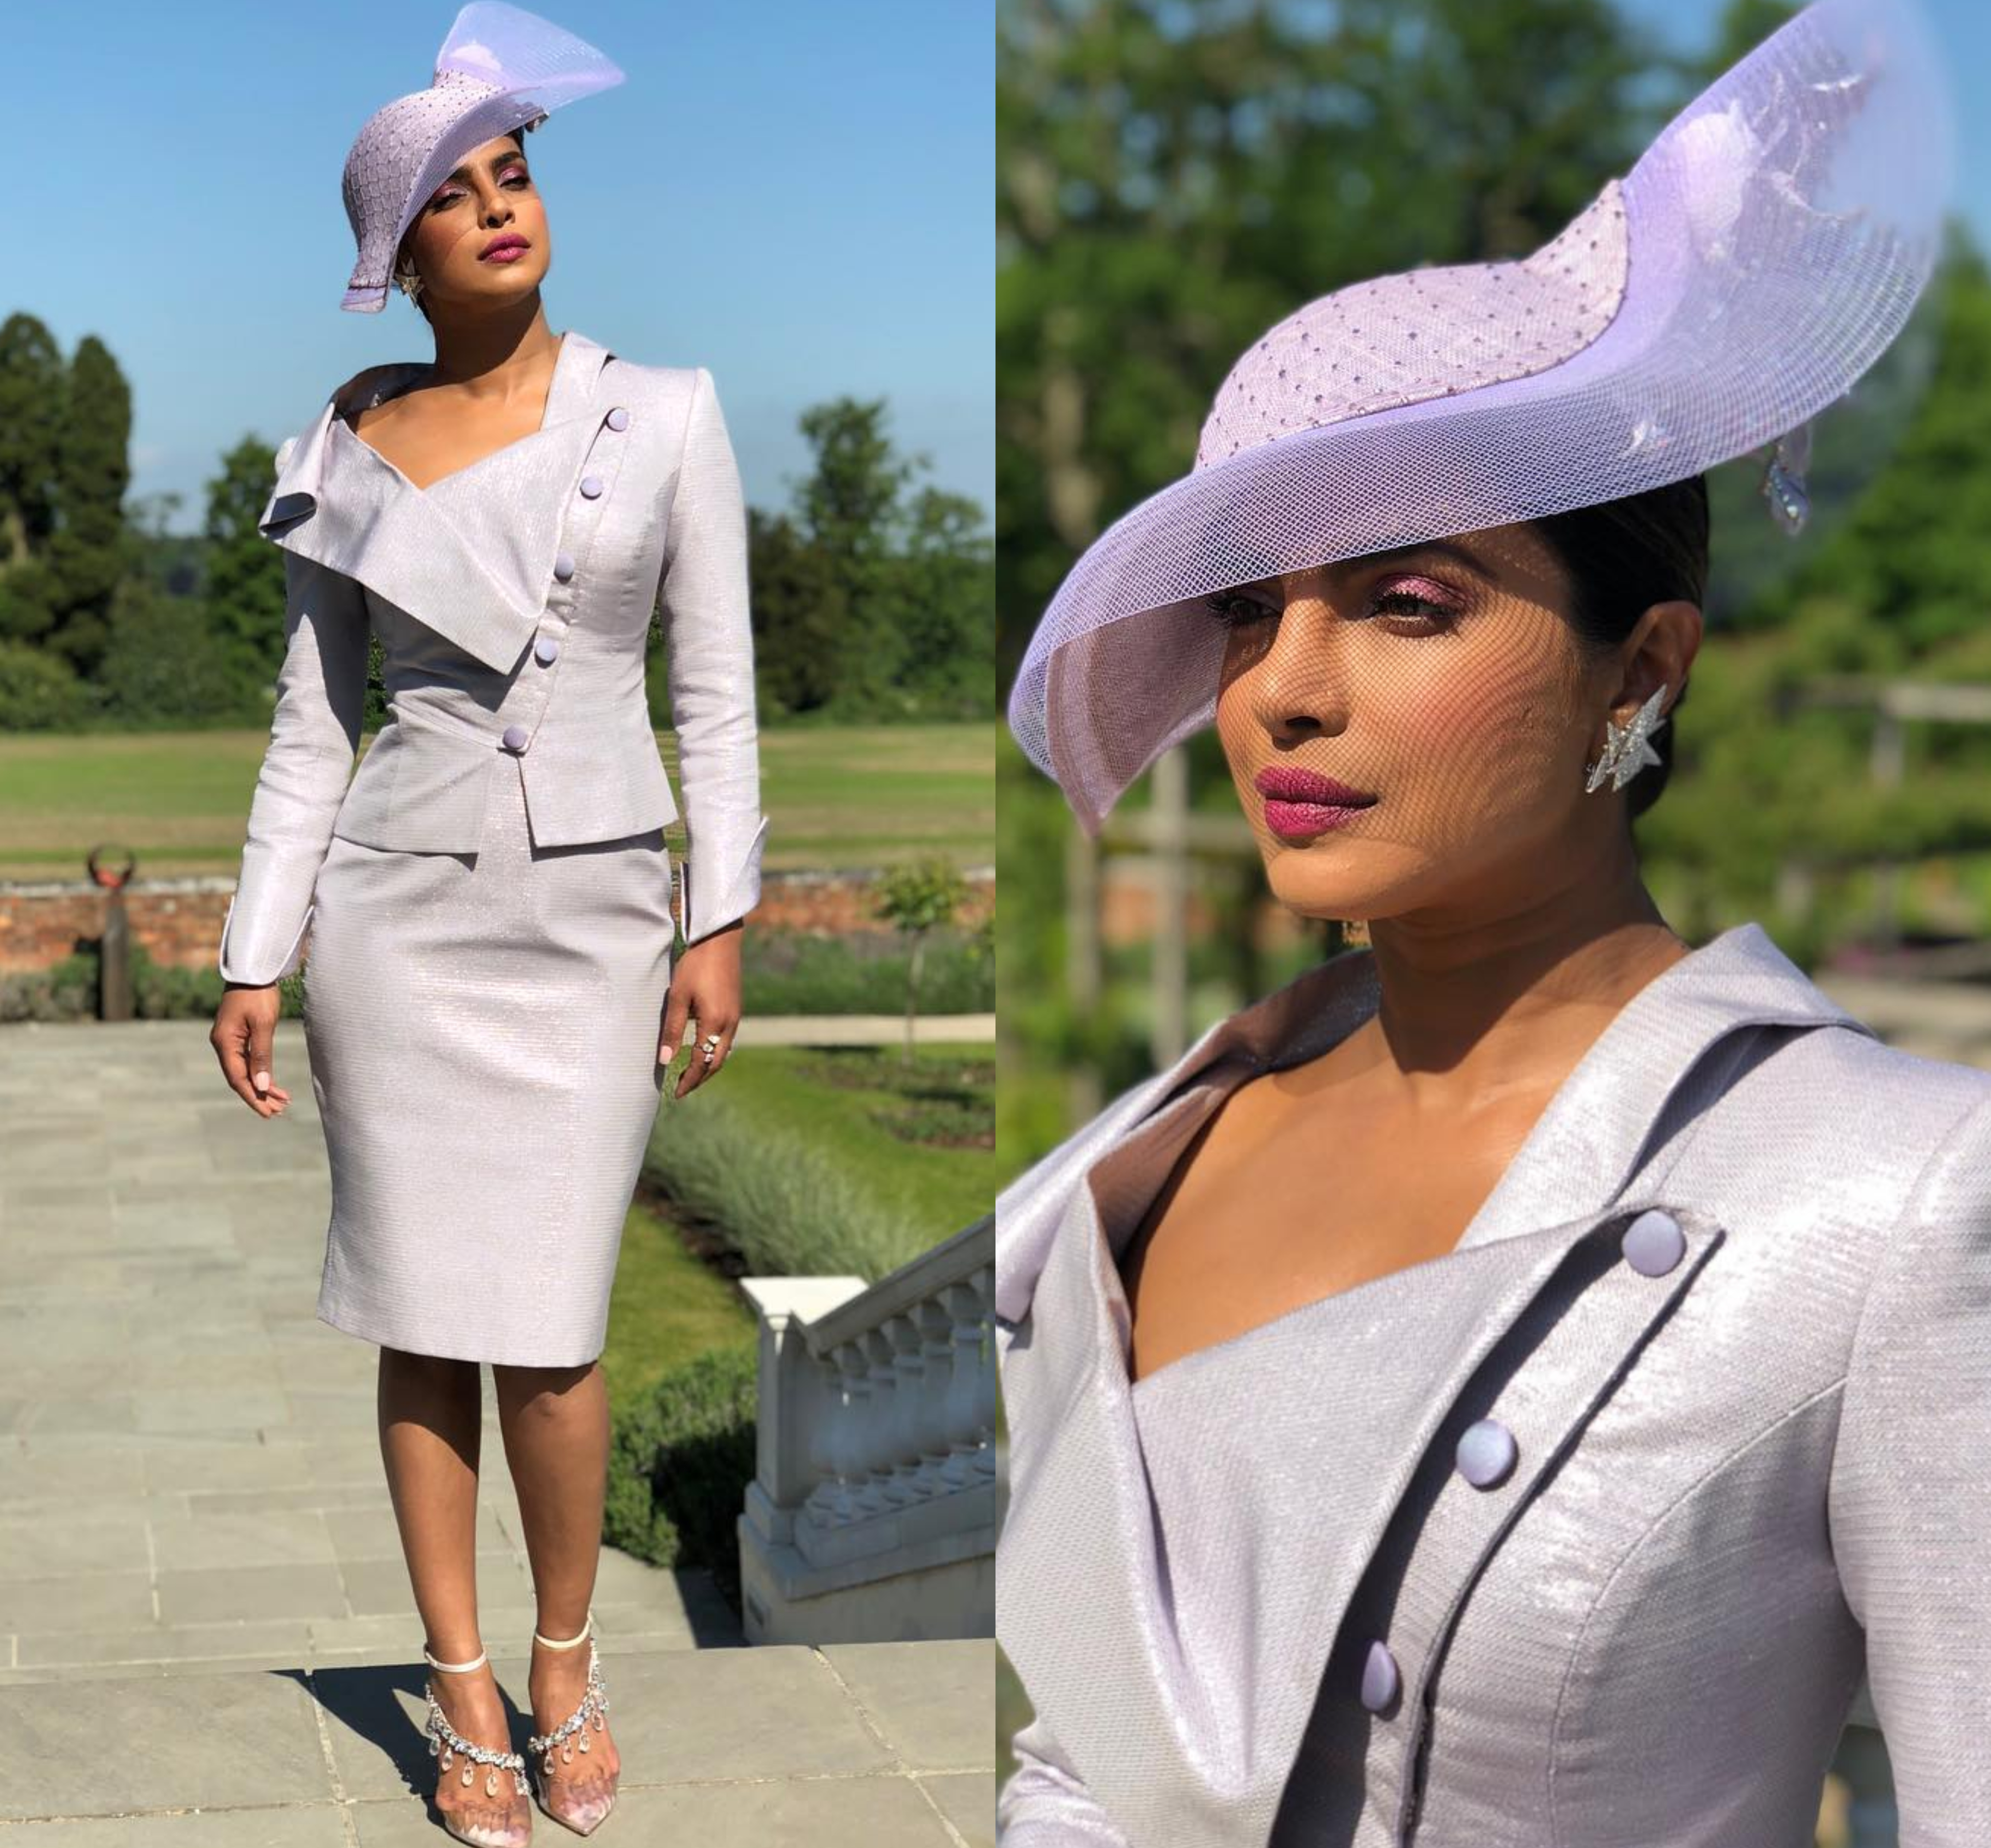 ffb423a3e4b45 And our very own desi diva and Meghan s good friend Priyanka Chopra made it  to the royal wedding ...